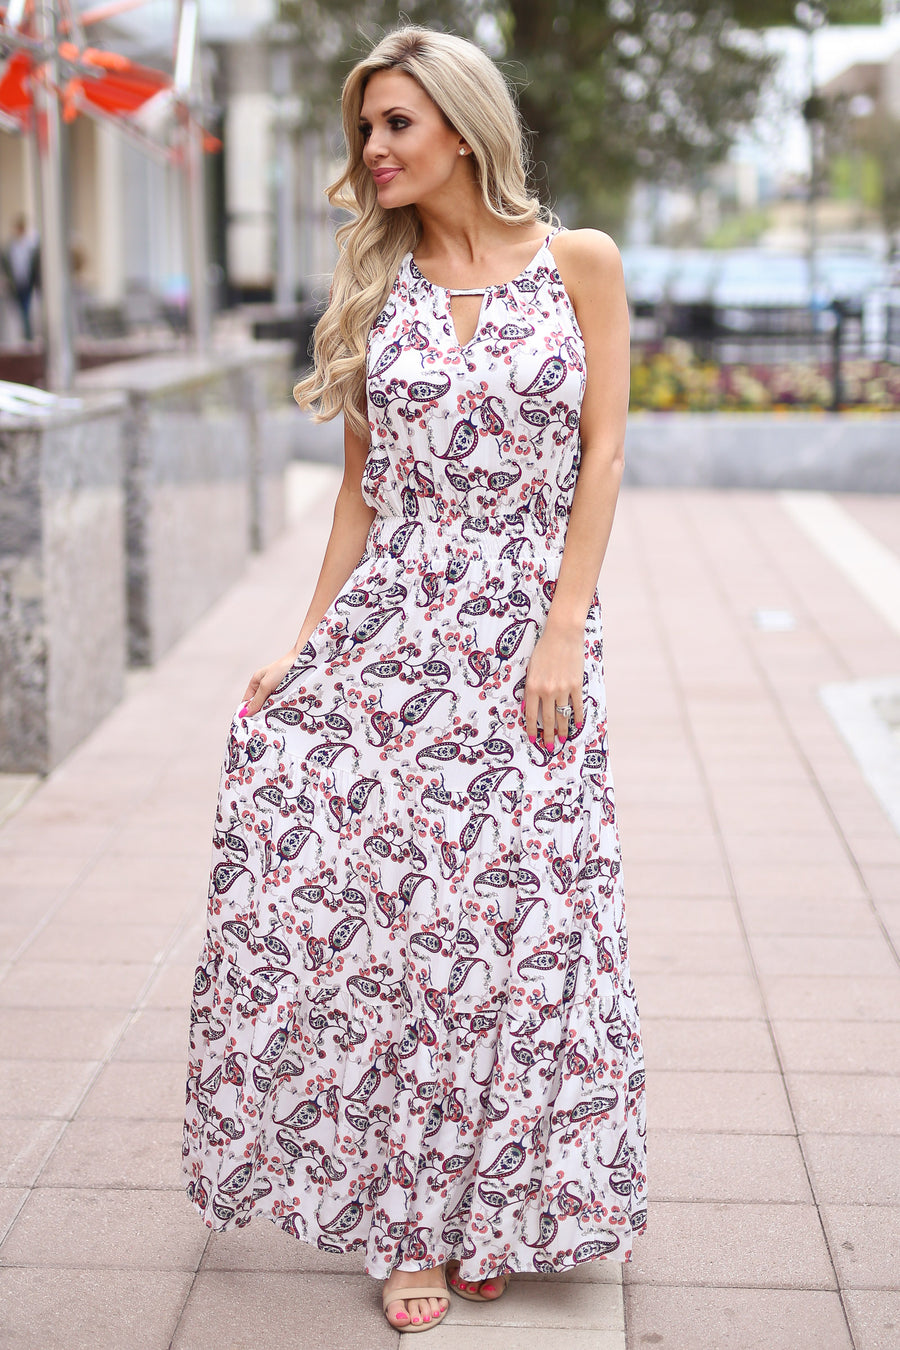 Top of the World Maxi Dress - Ivory paisley print halter maxi dress, side, Closet Candy Boutique